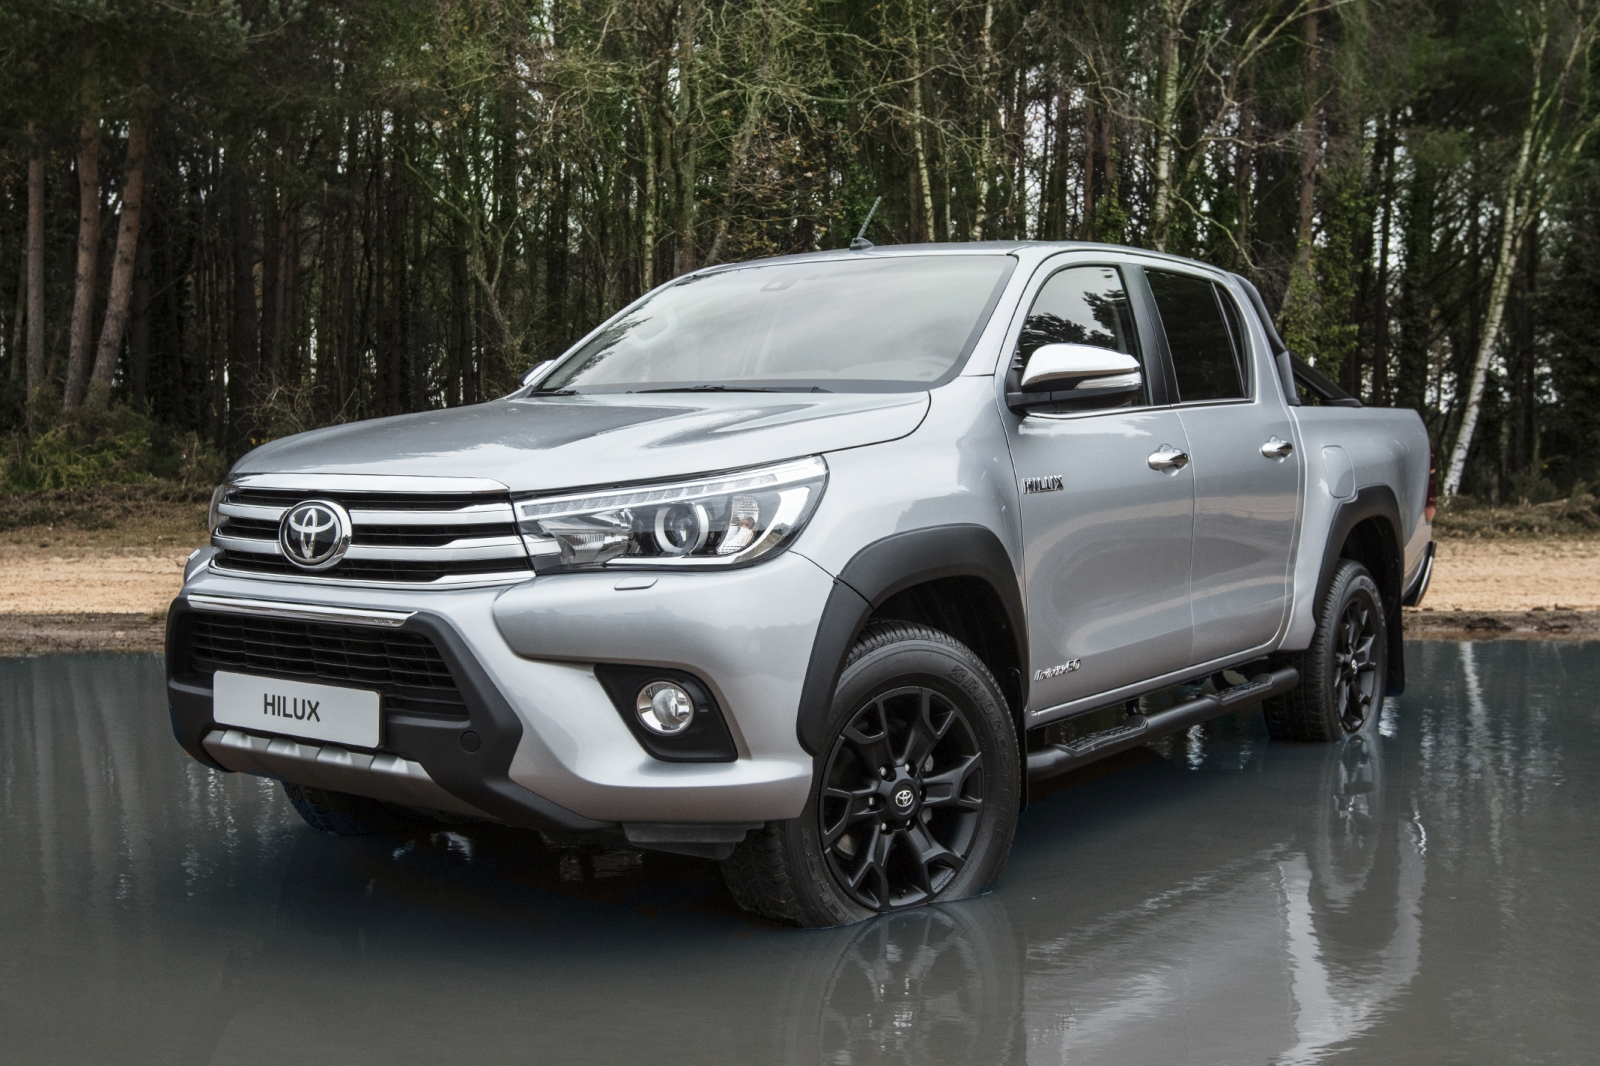 Hilux Invincible 50 Black Edition